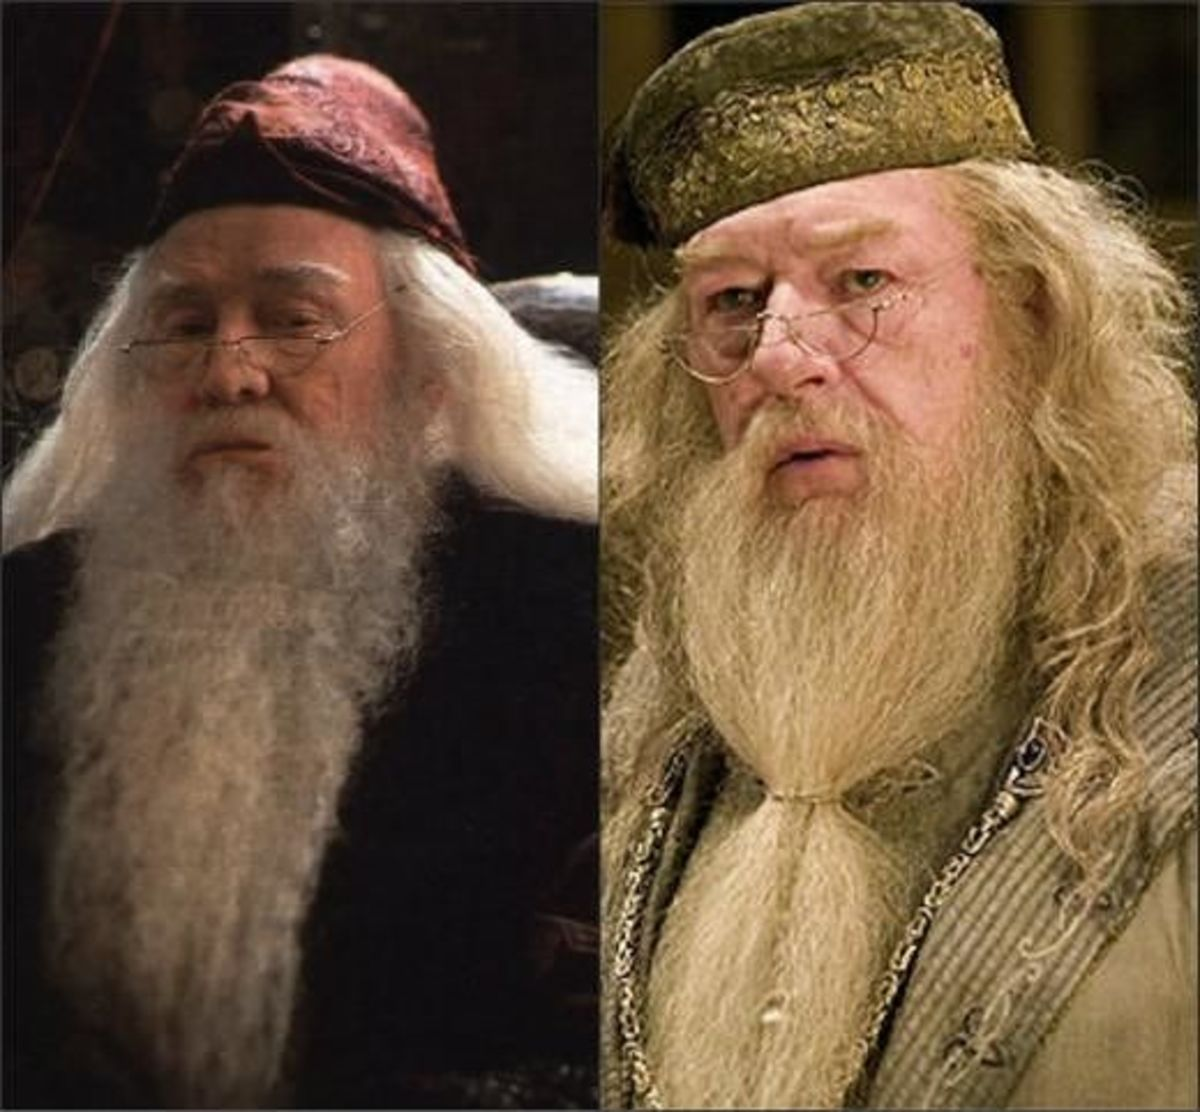 Albus Dumbledore, played by Richard Harris (left) and Michael Gambon (right)